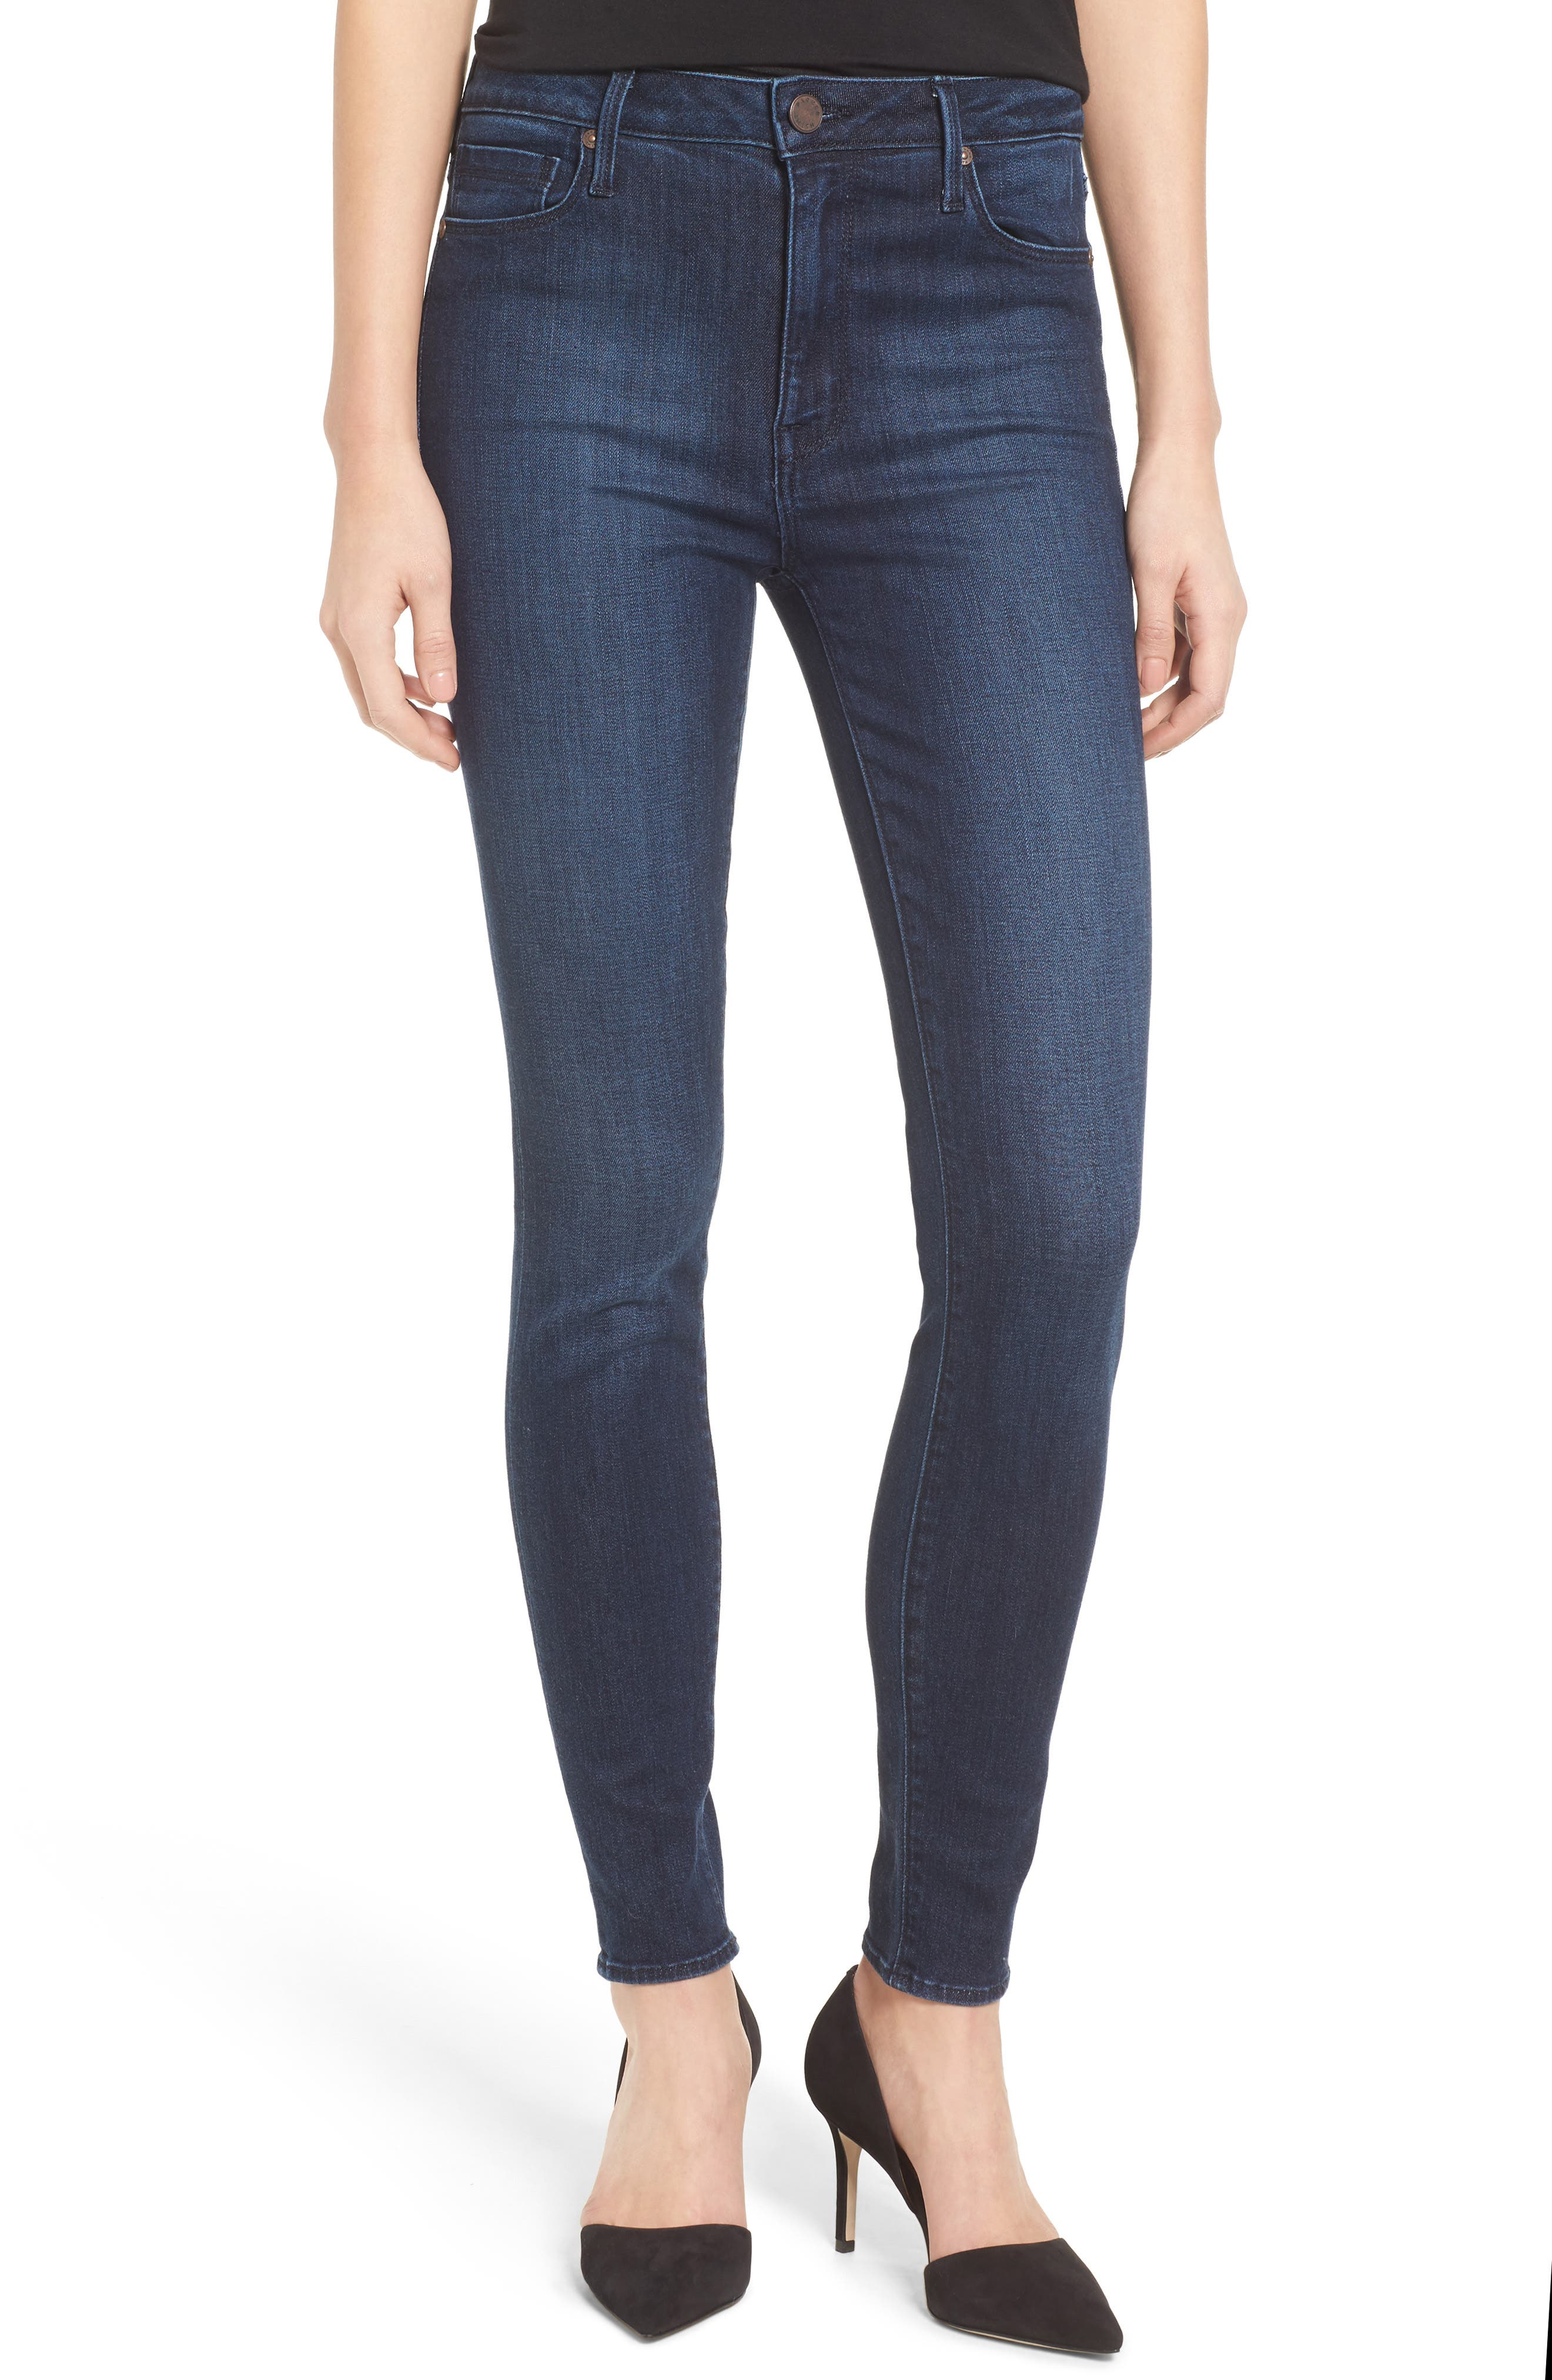 Bombshell High Waist Stretch Skinny Jeans,                             Main thumbnail 3, color,